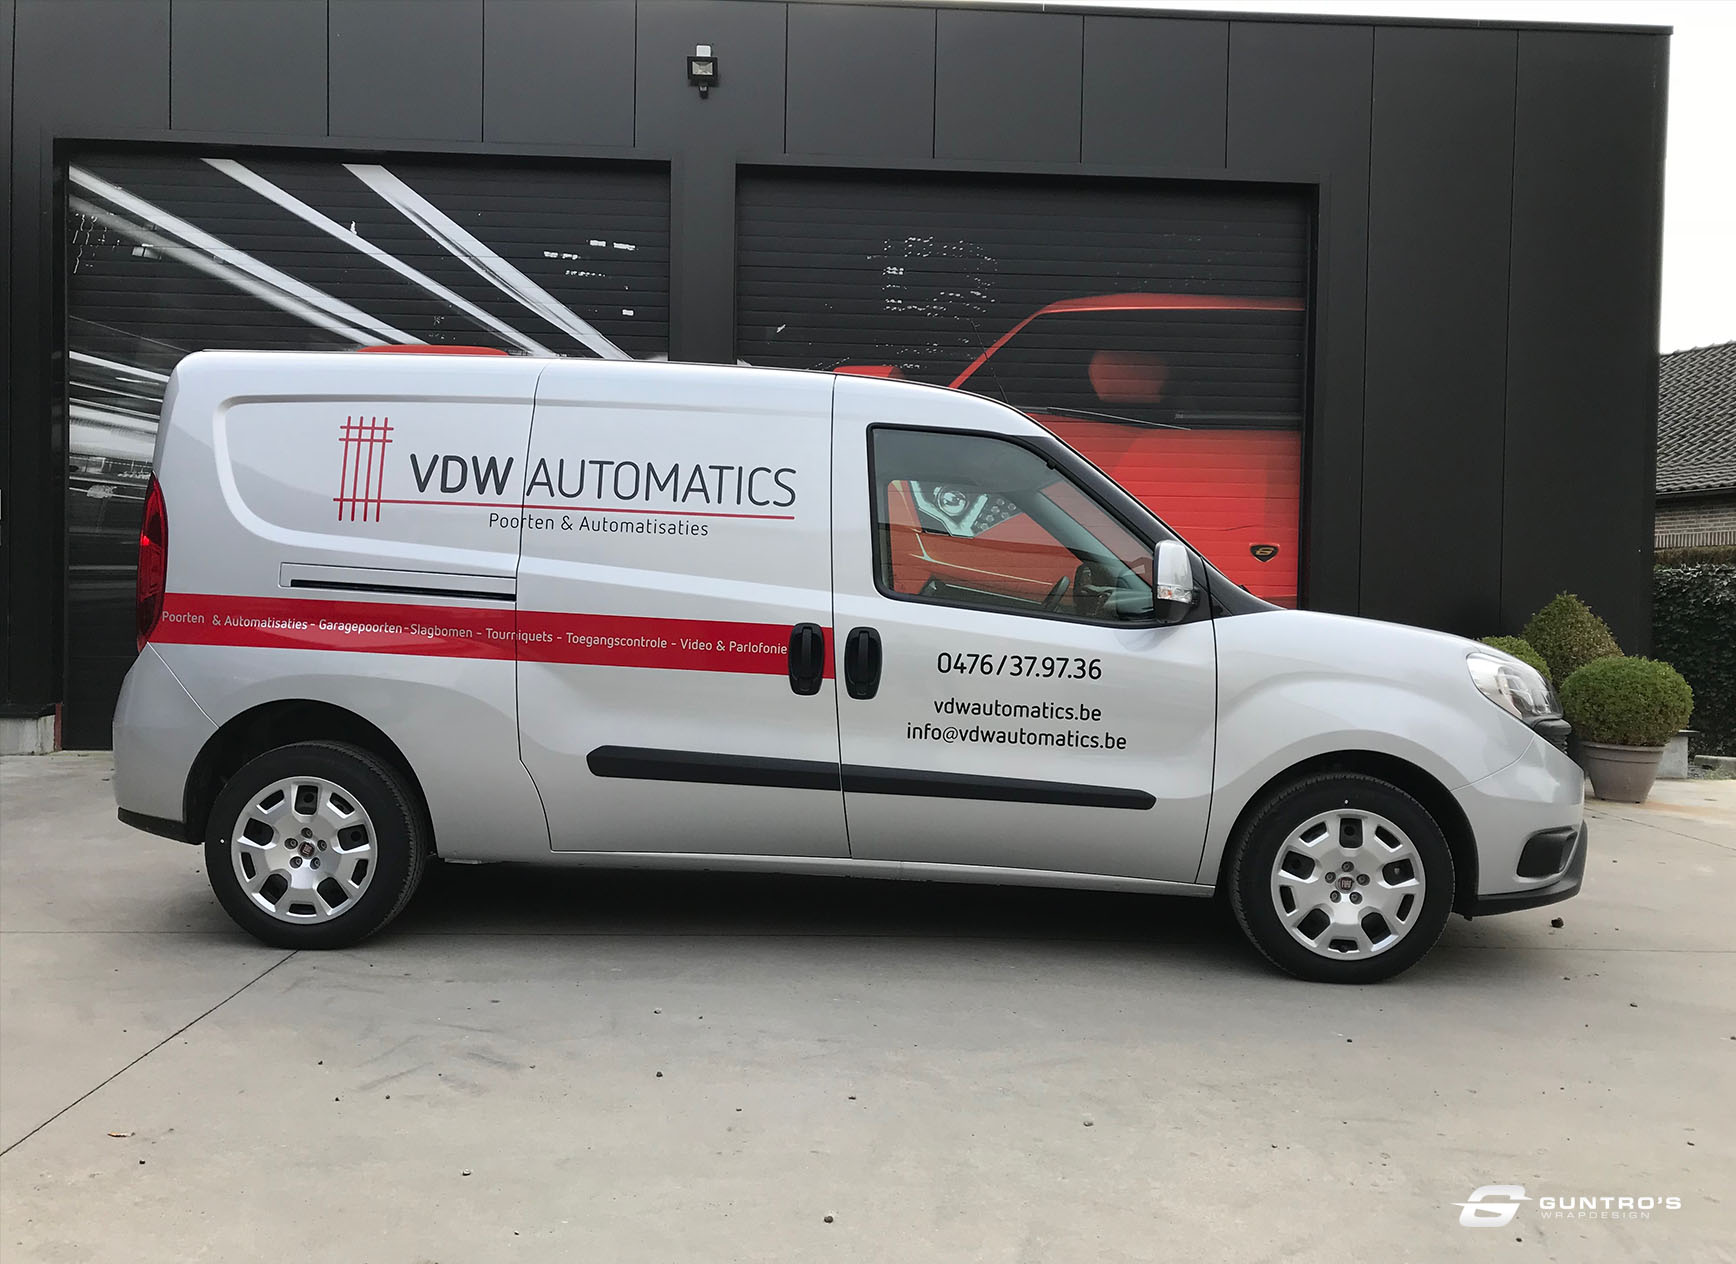 BELETTERING VDW AUTOMATICS